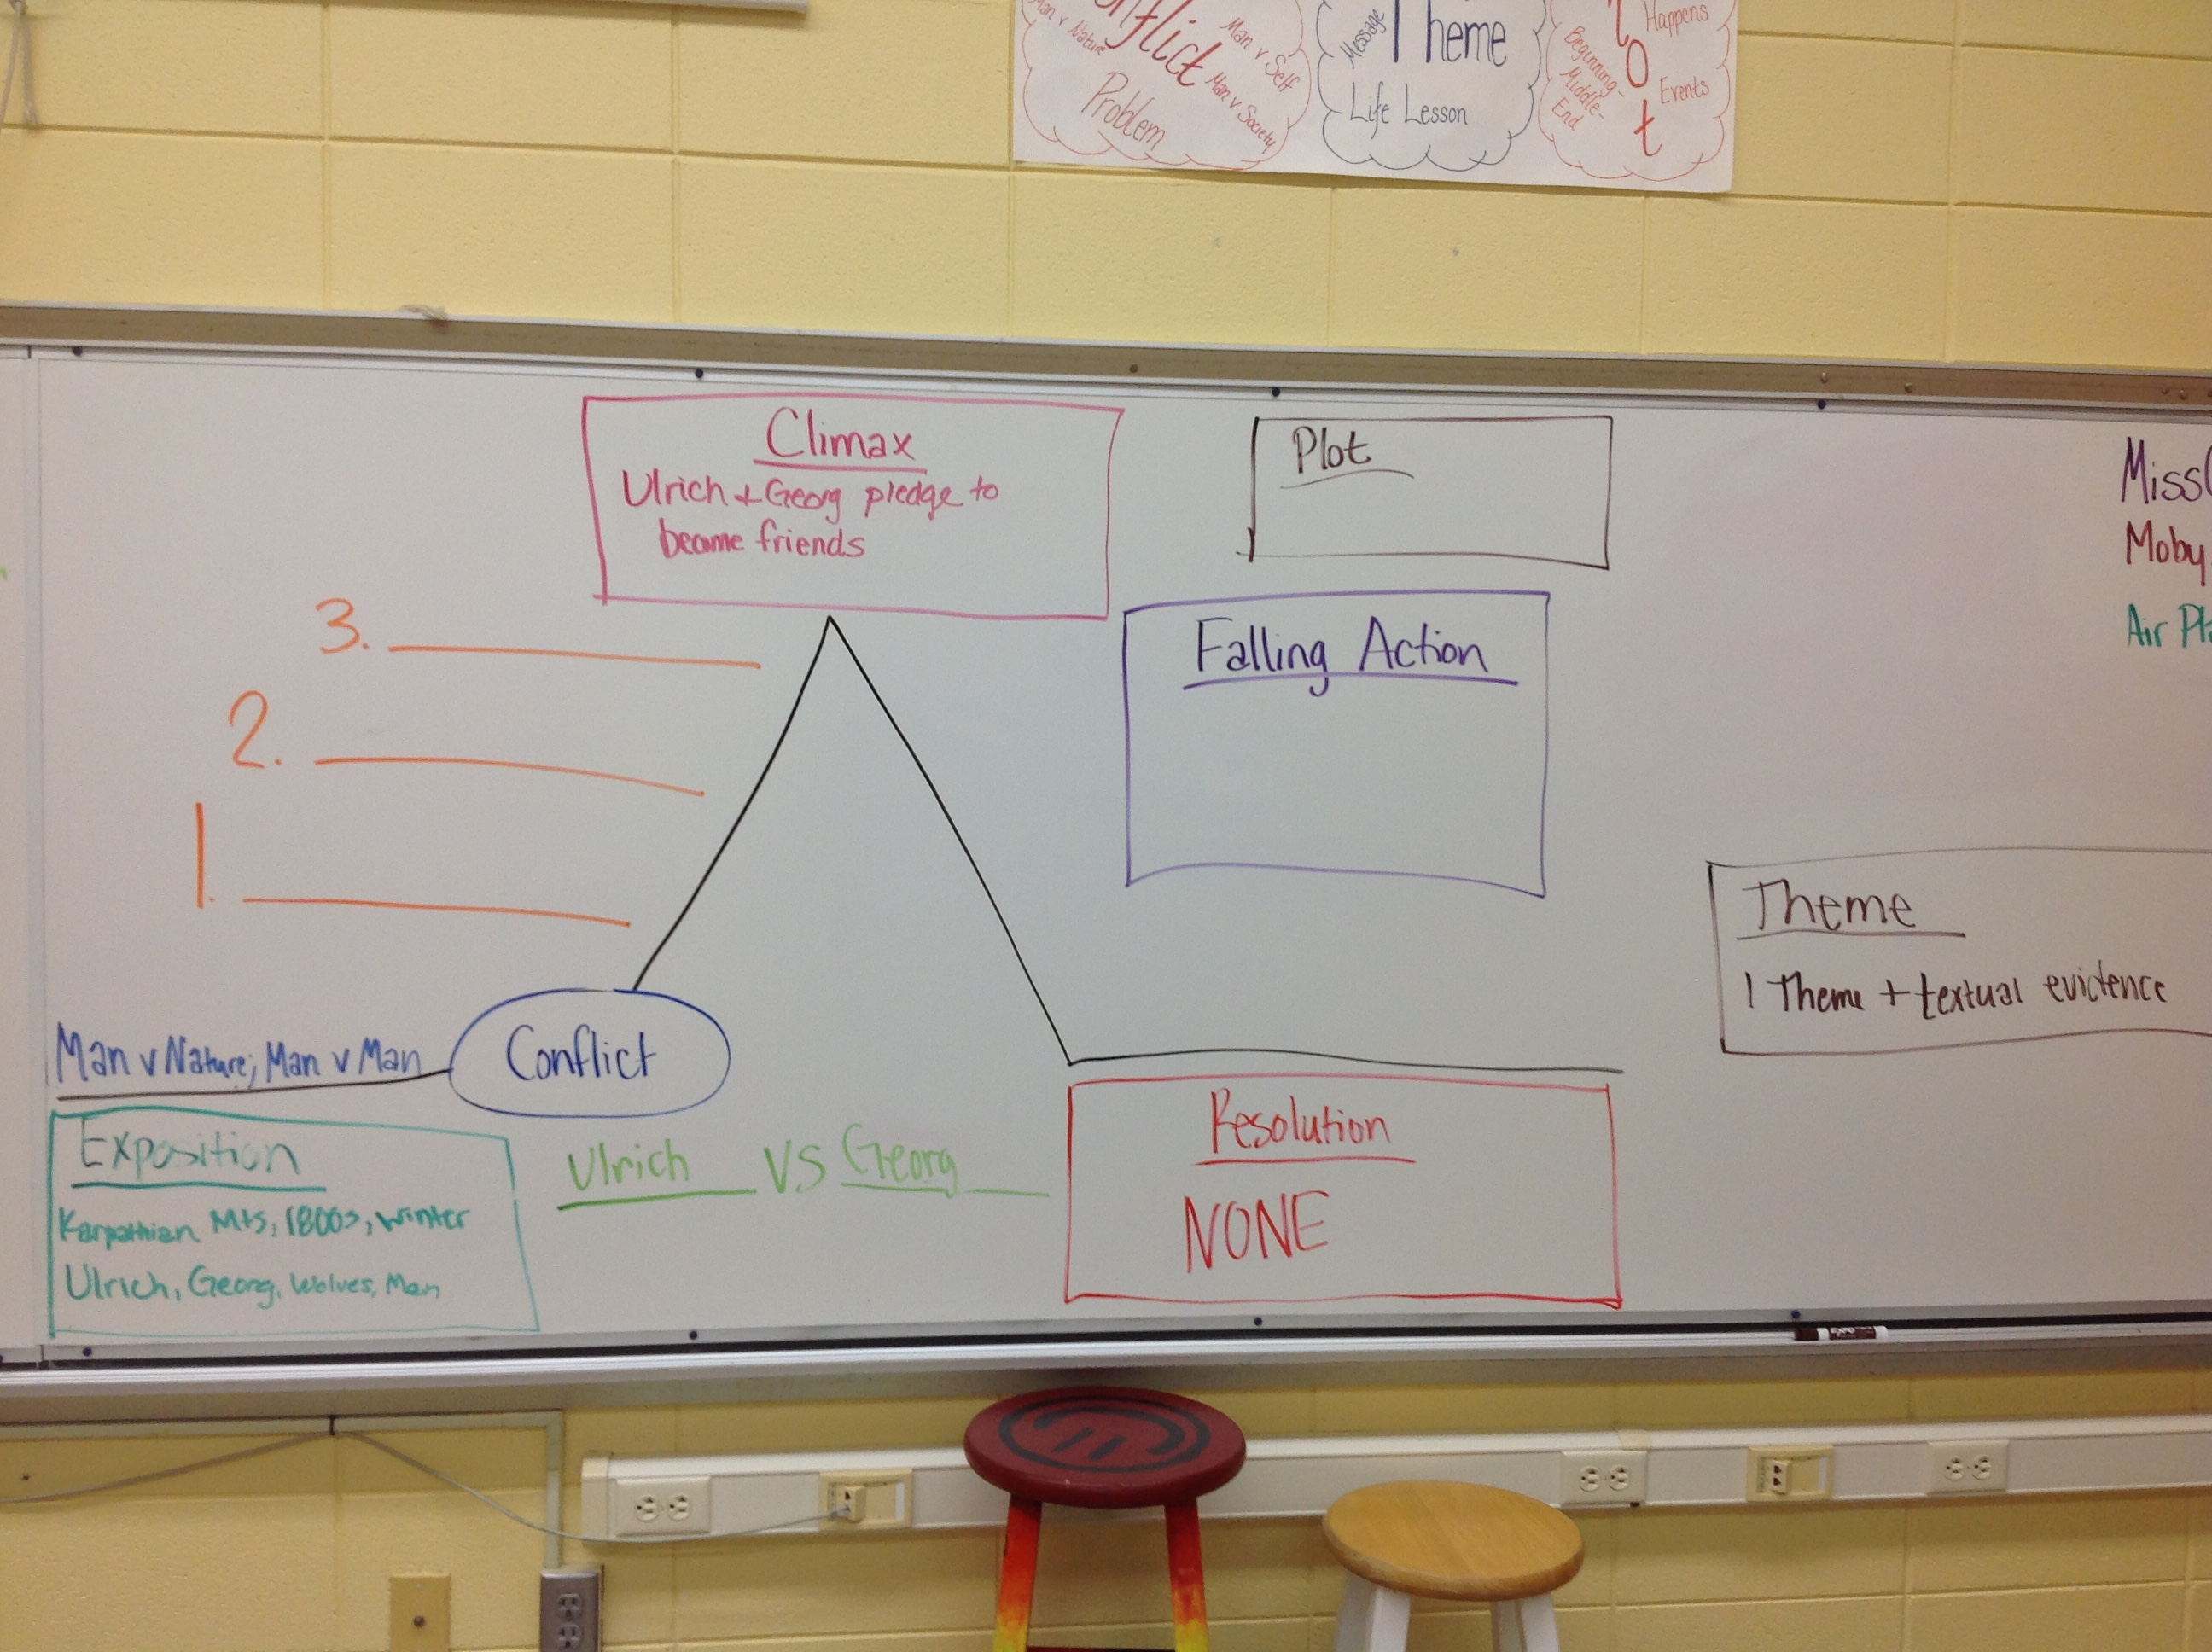 q assignments miss giesler s classroom side along 5 image